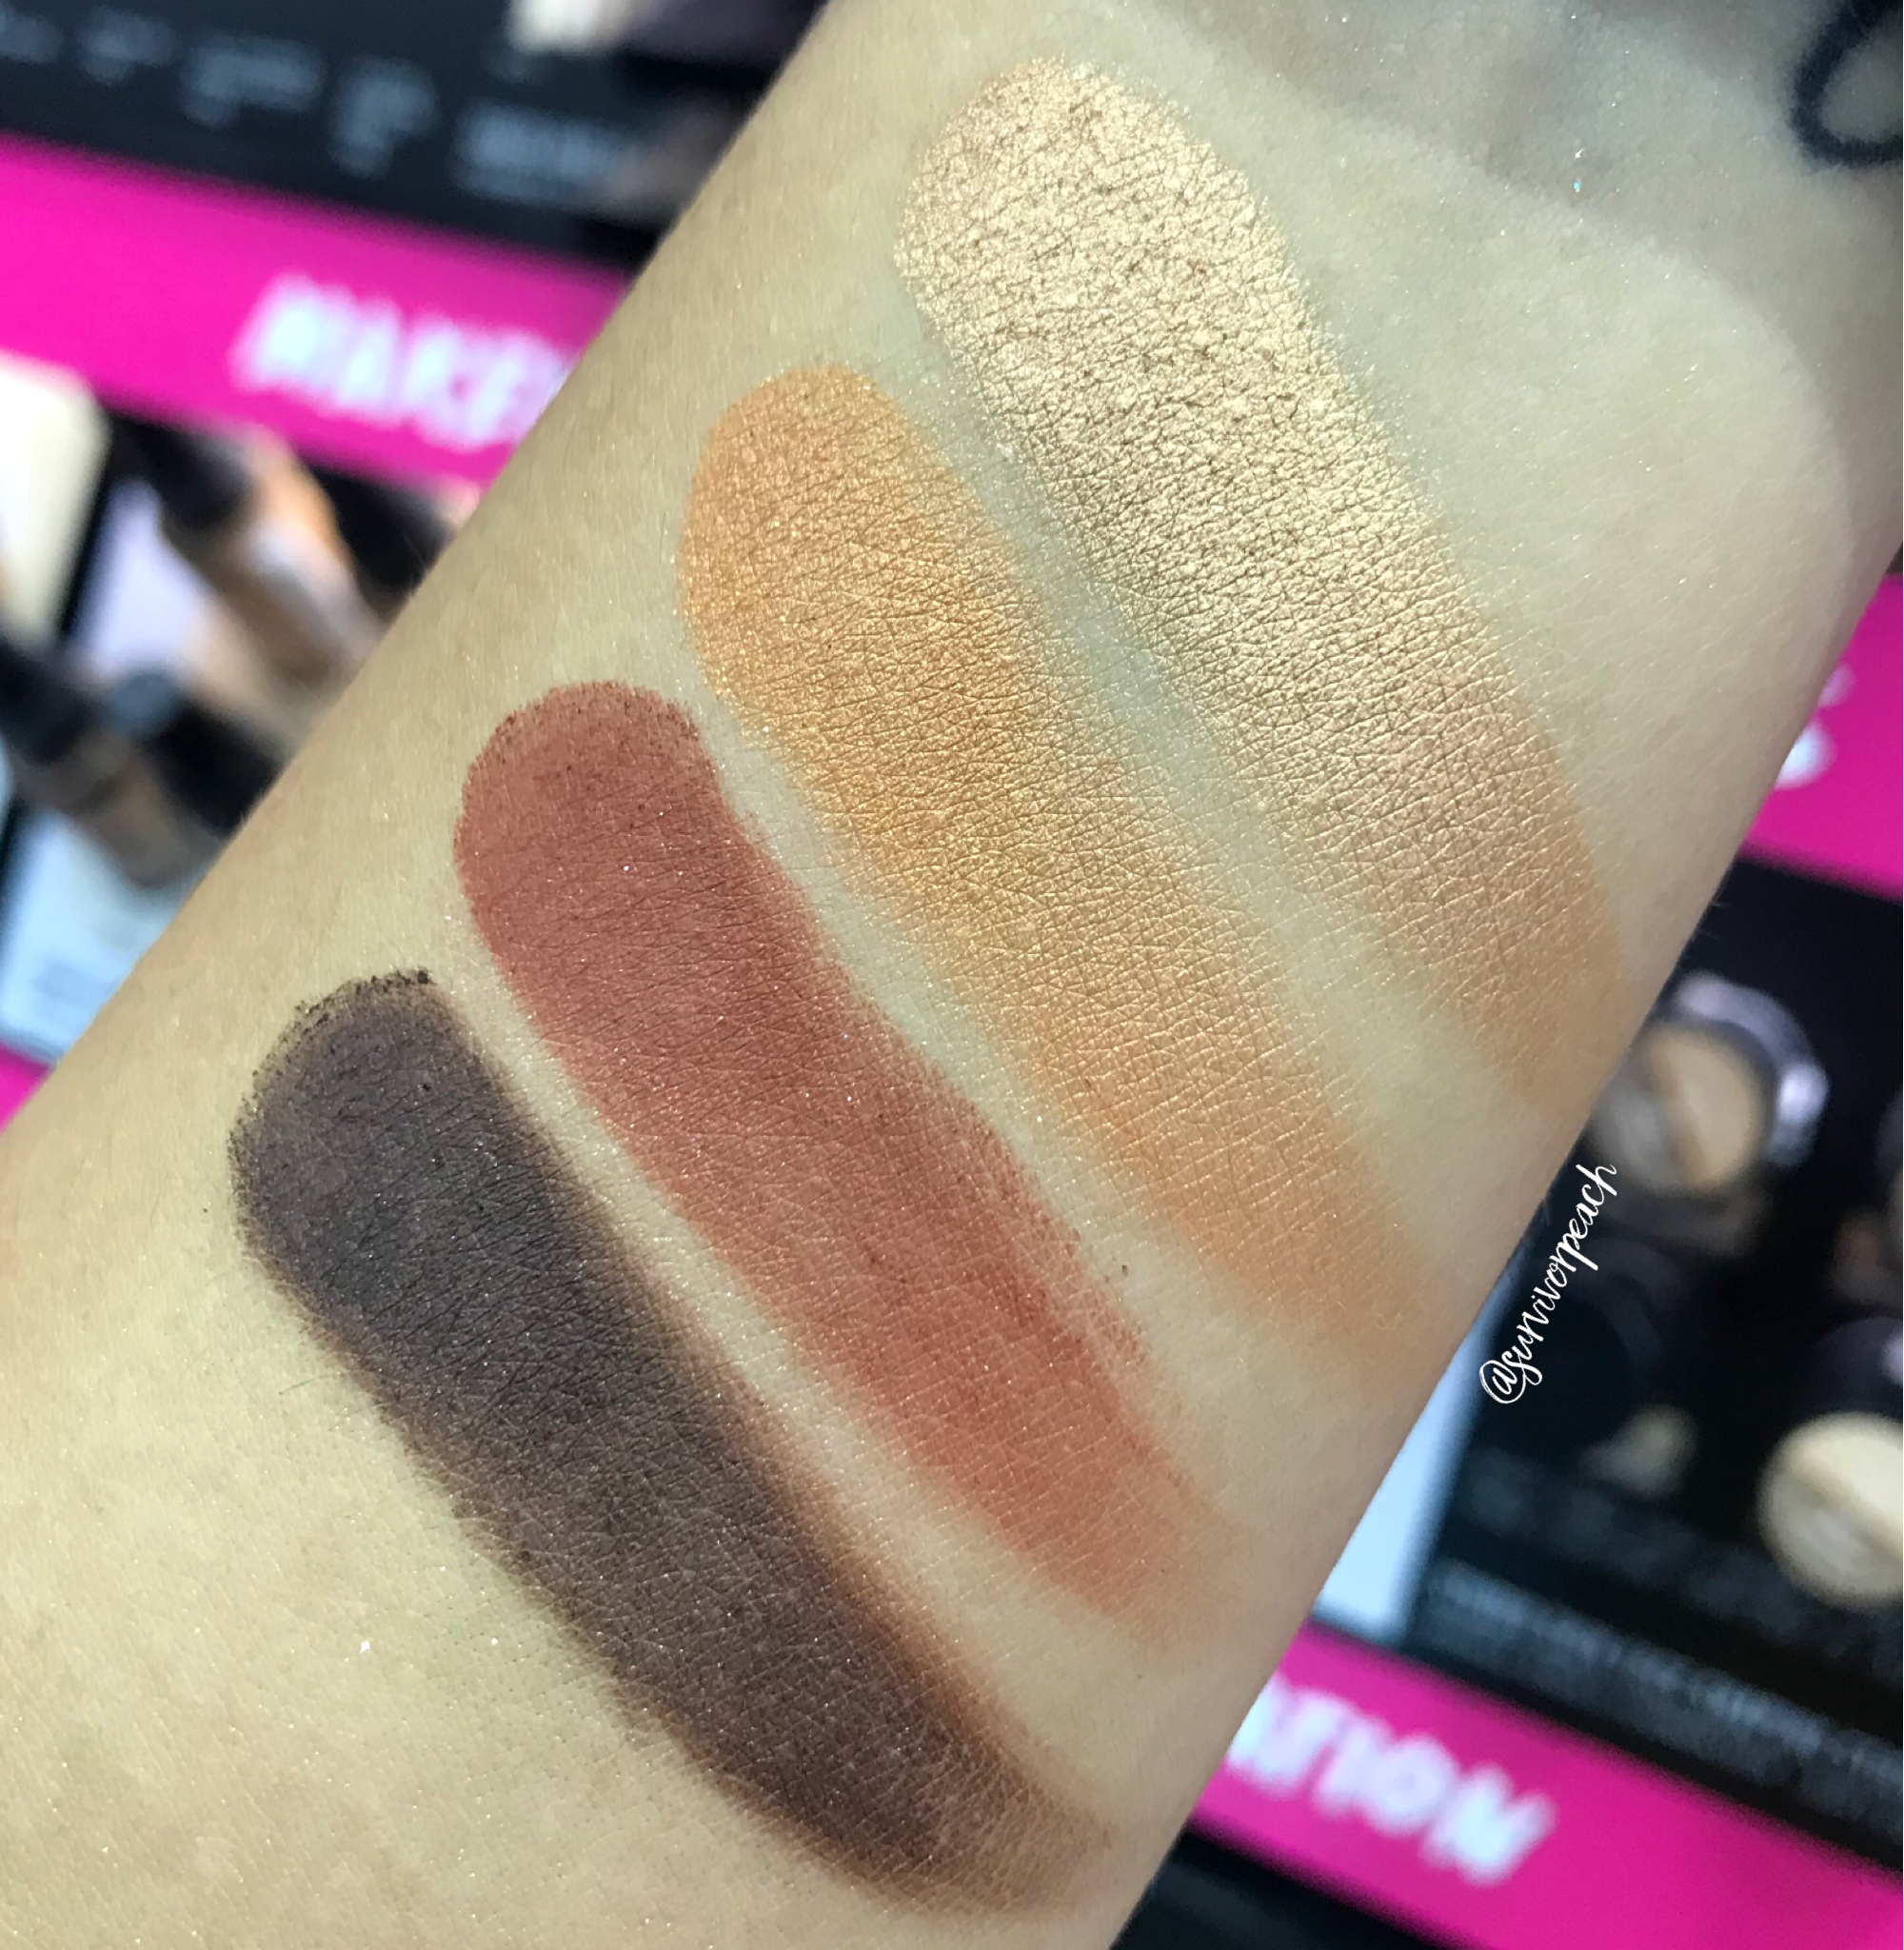 Swatches of the Smashbox Covershot Eyeshadow palette - Ablaze